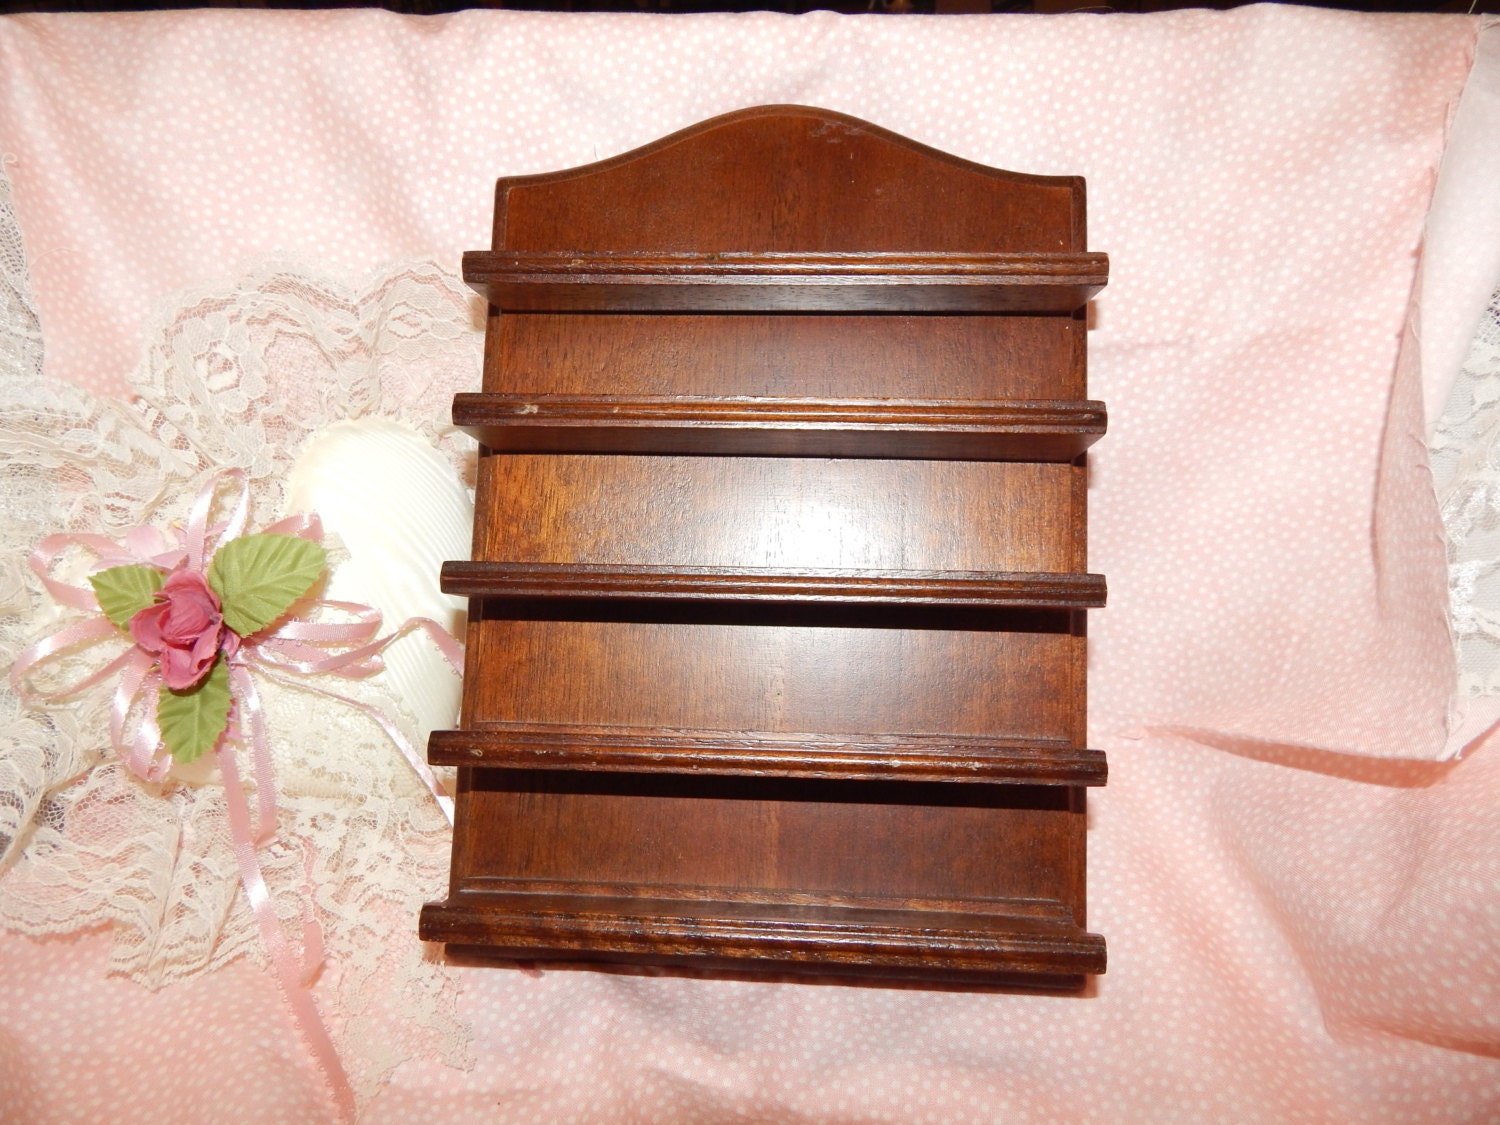 wood wall shelf display wall hanging 5 shelves for small curio. Black Bedroom Furniture Sets. Home Design Ideas